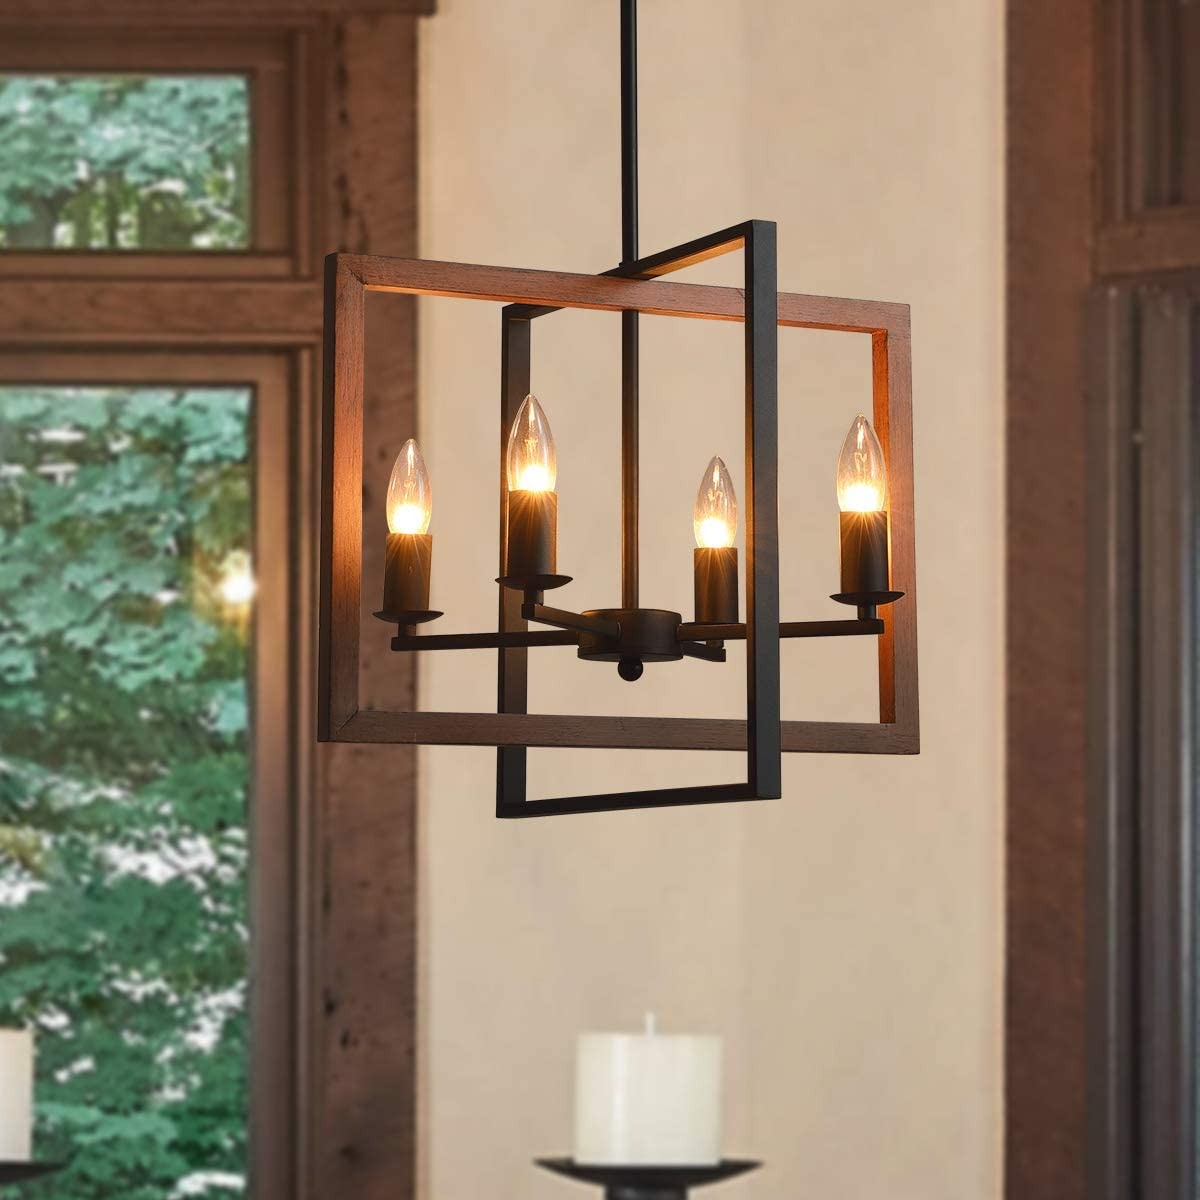 PUSU Industrial Island Light 4-Light Semi Flush Mount Chandeliers E12 Lamp Holder for Kitchen Living Room Dining Room Bedroom Bar and Restaurant.